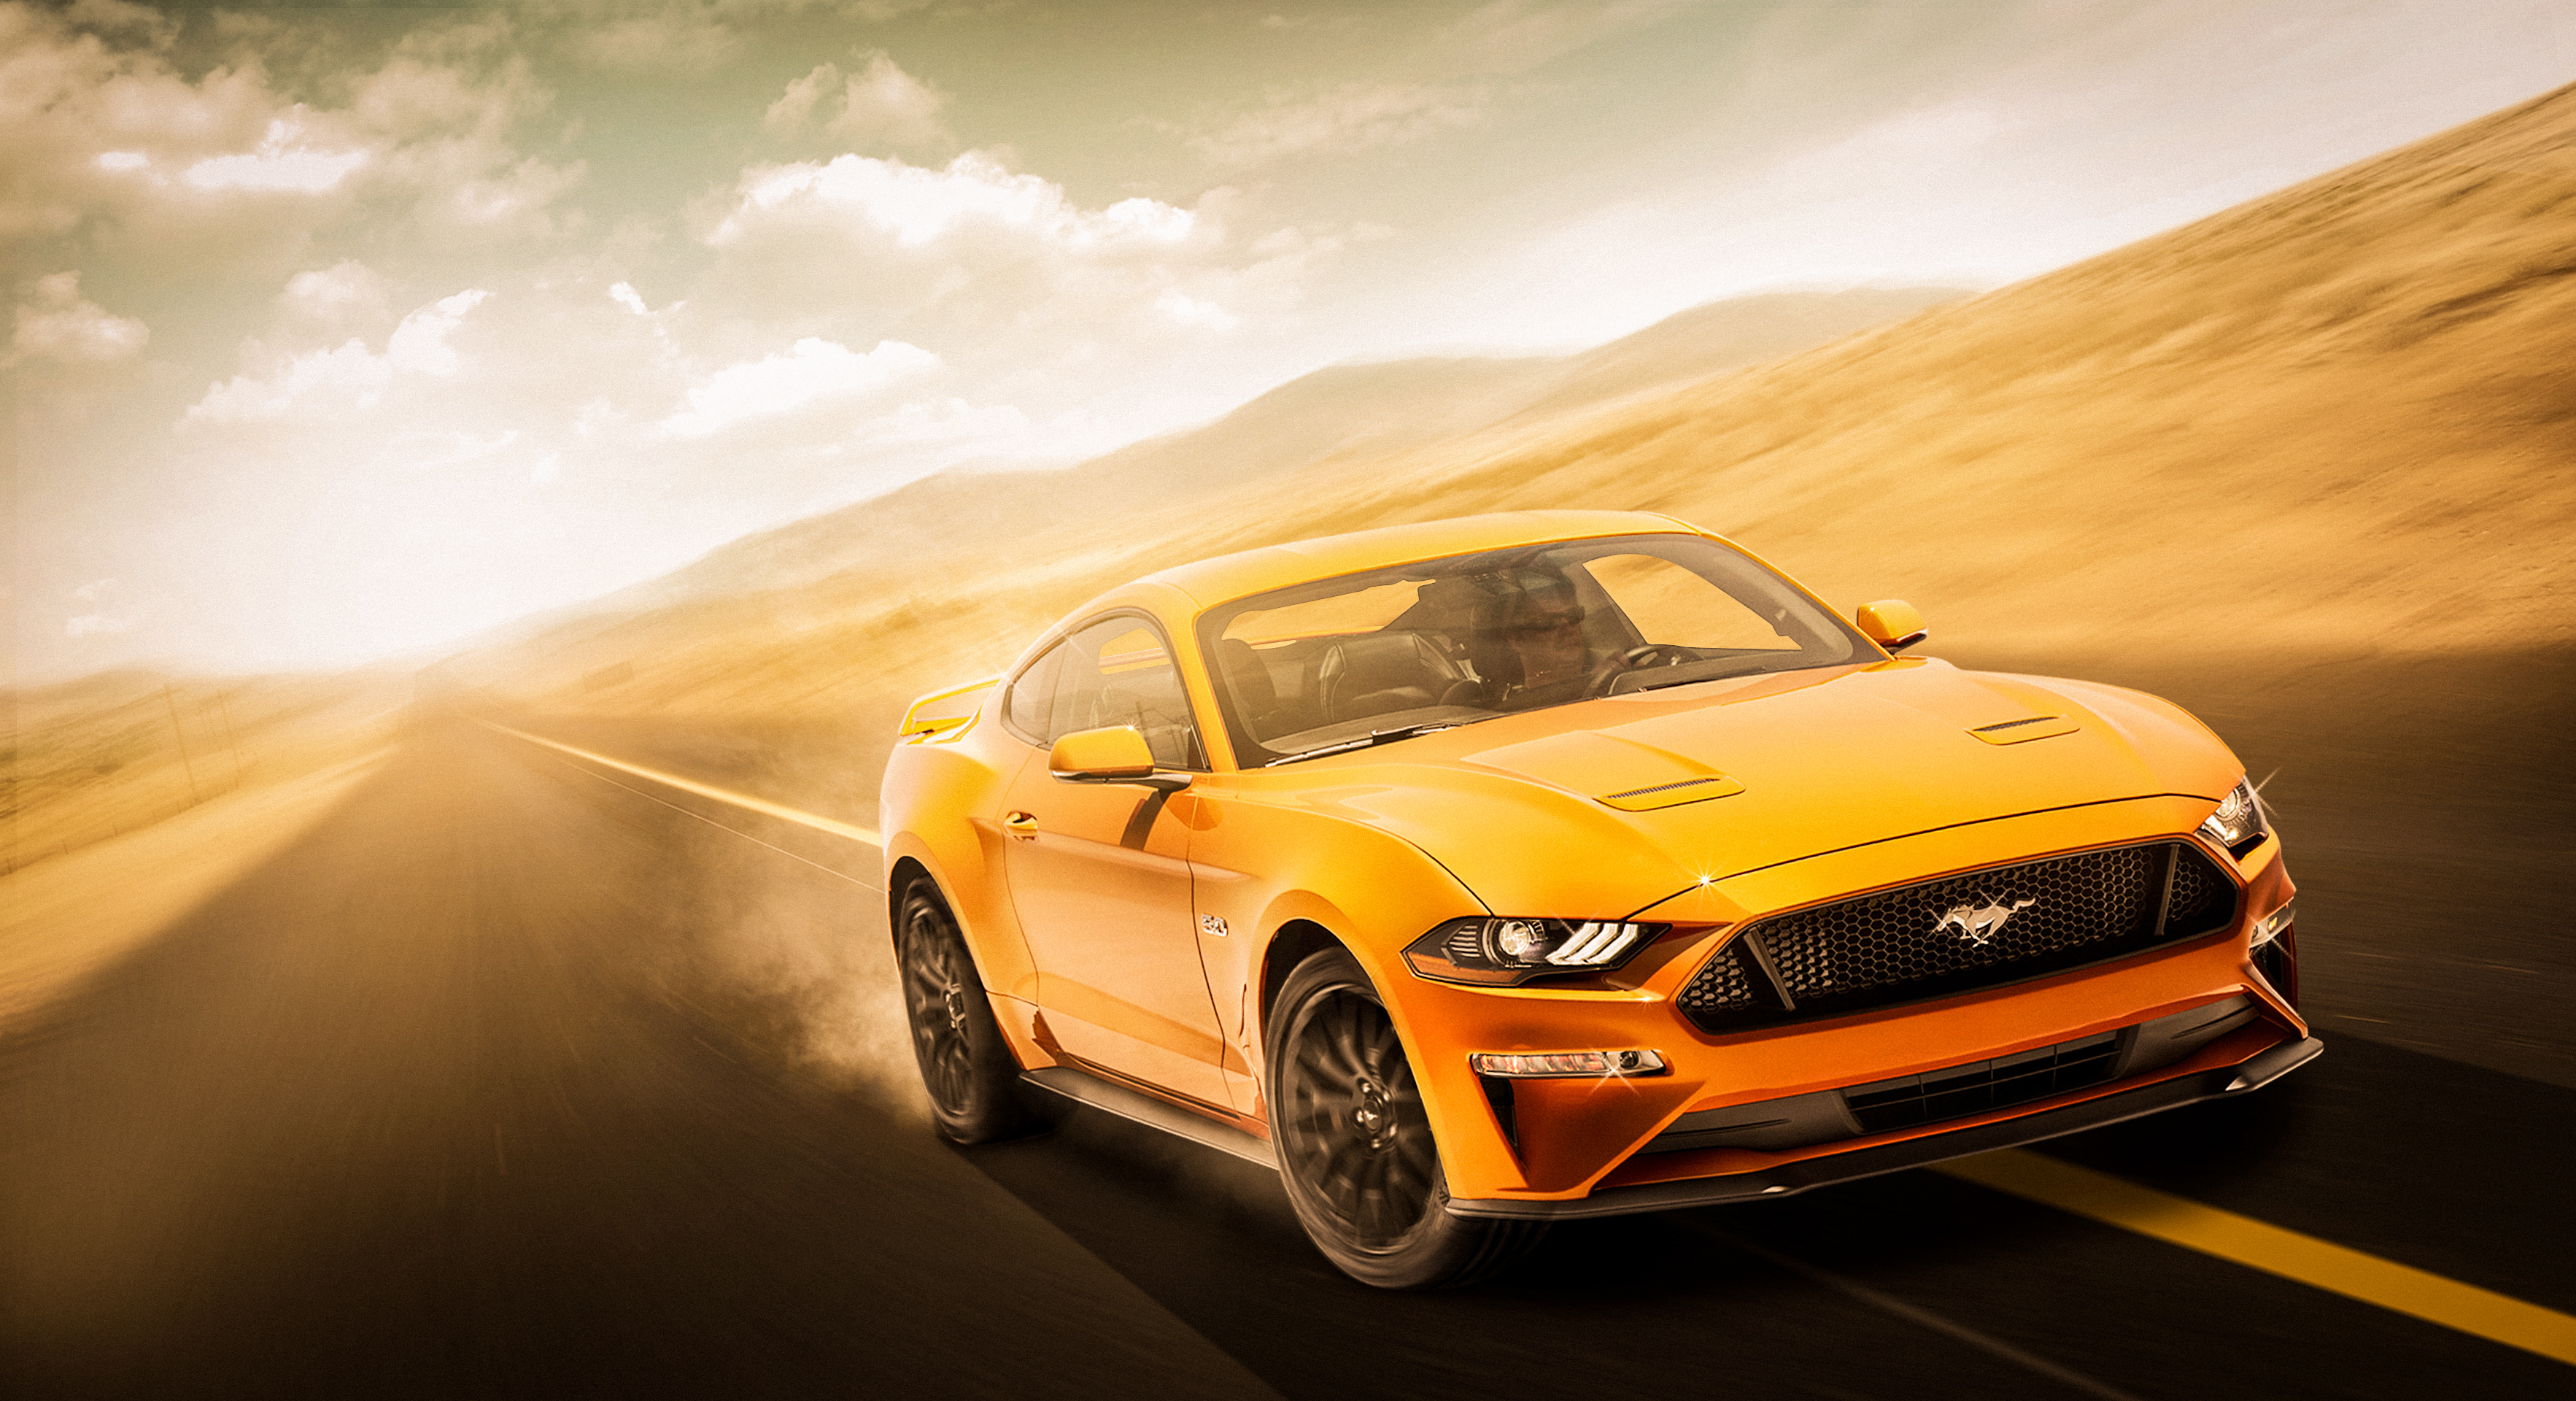 Yellow Mustang 4k, HD Cars, 4k Wallpapers, Images ...